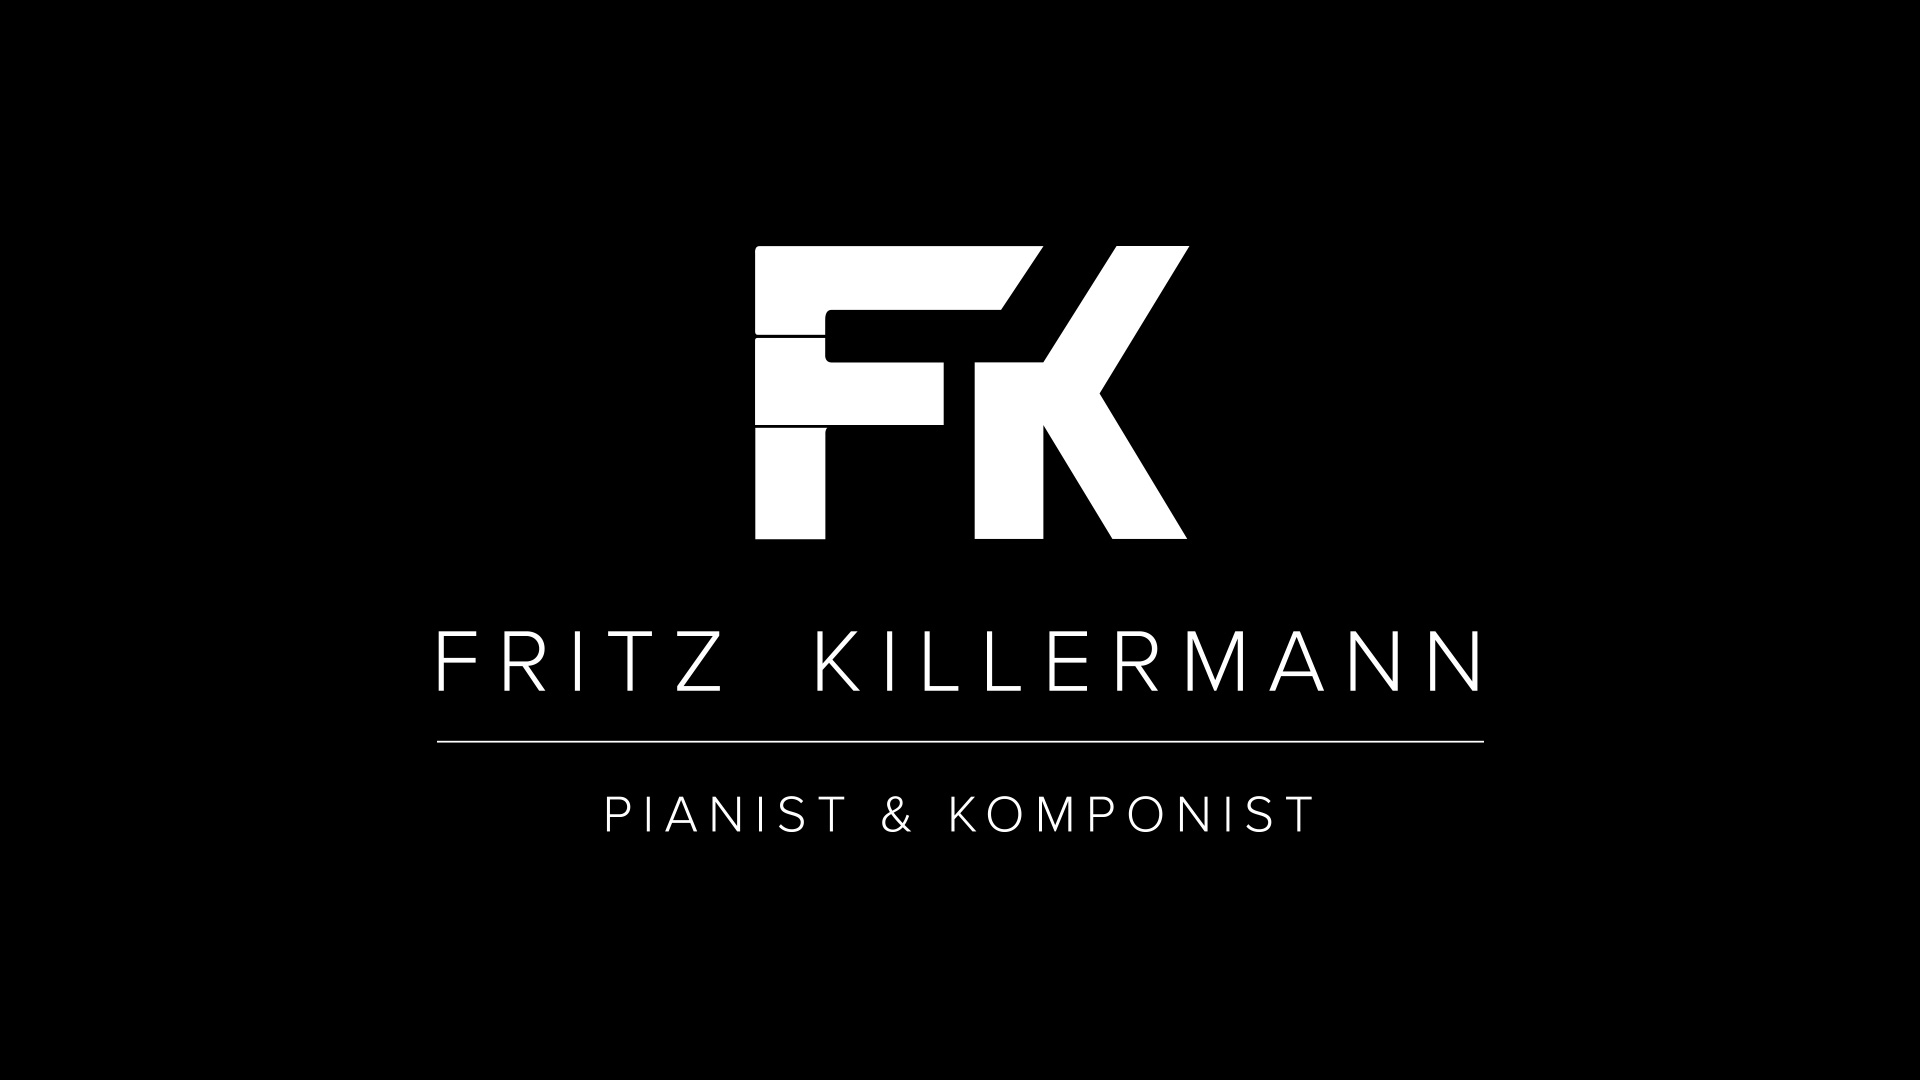 Fritz-Killermann-Logo